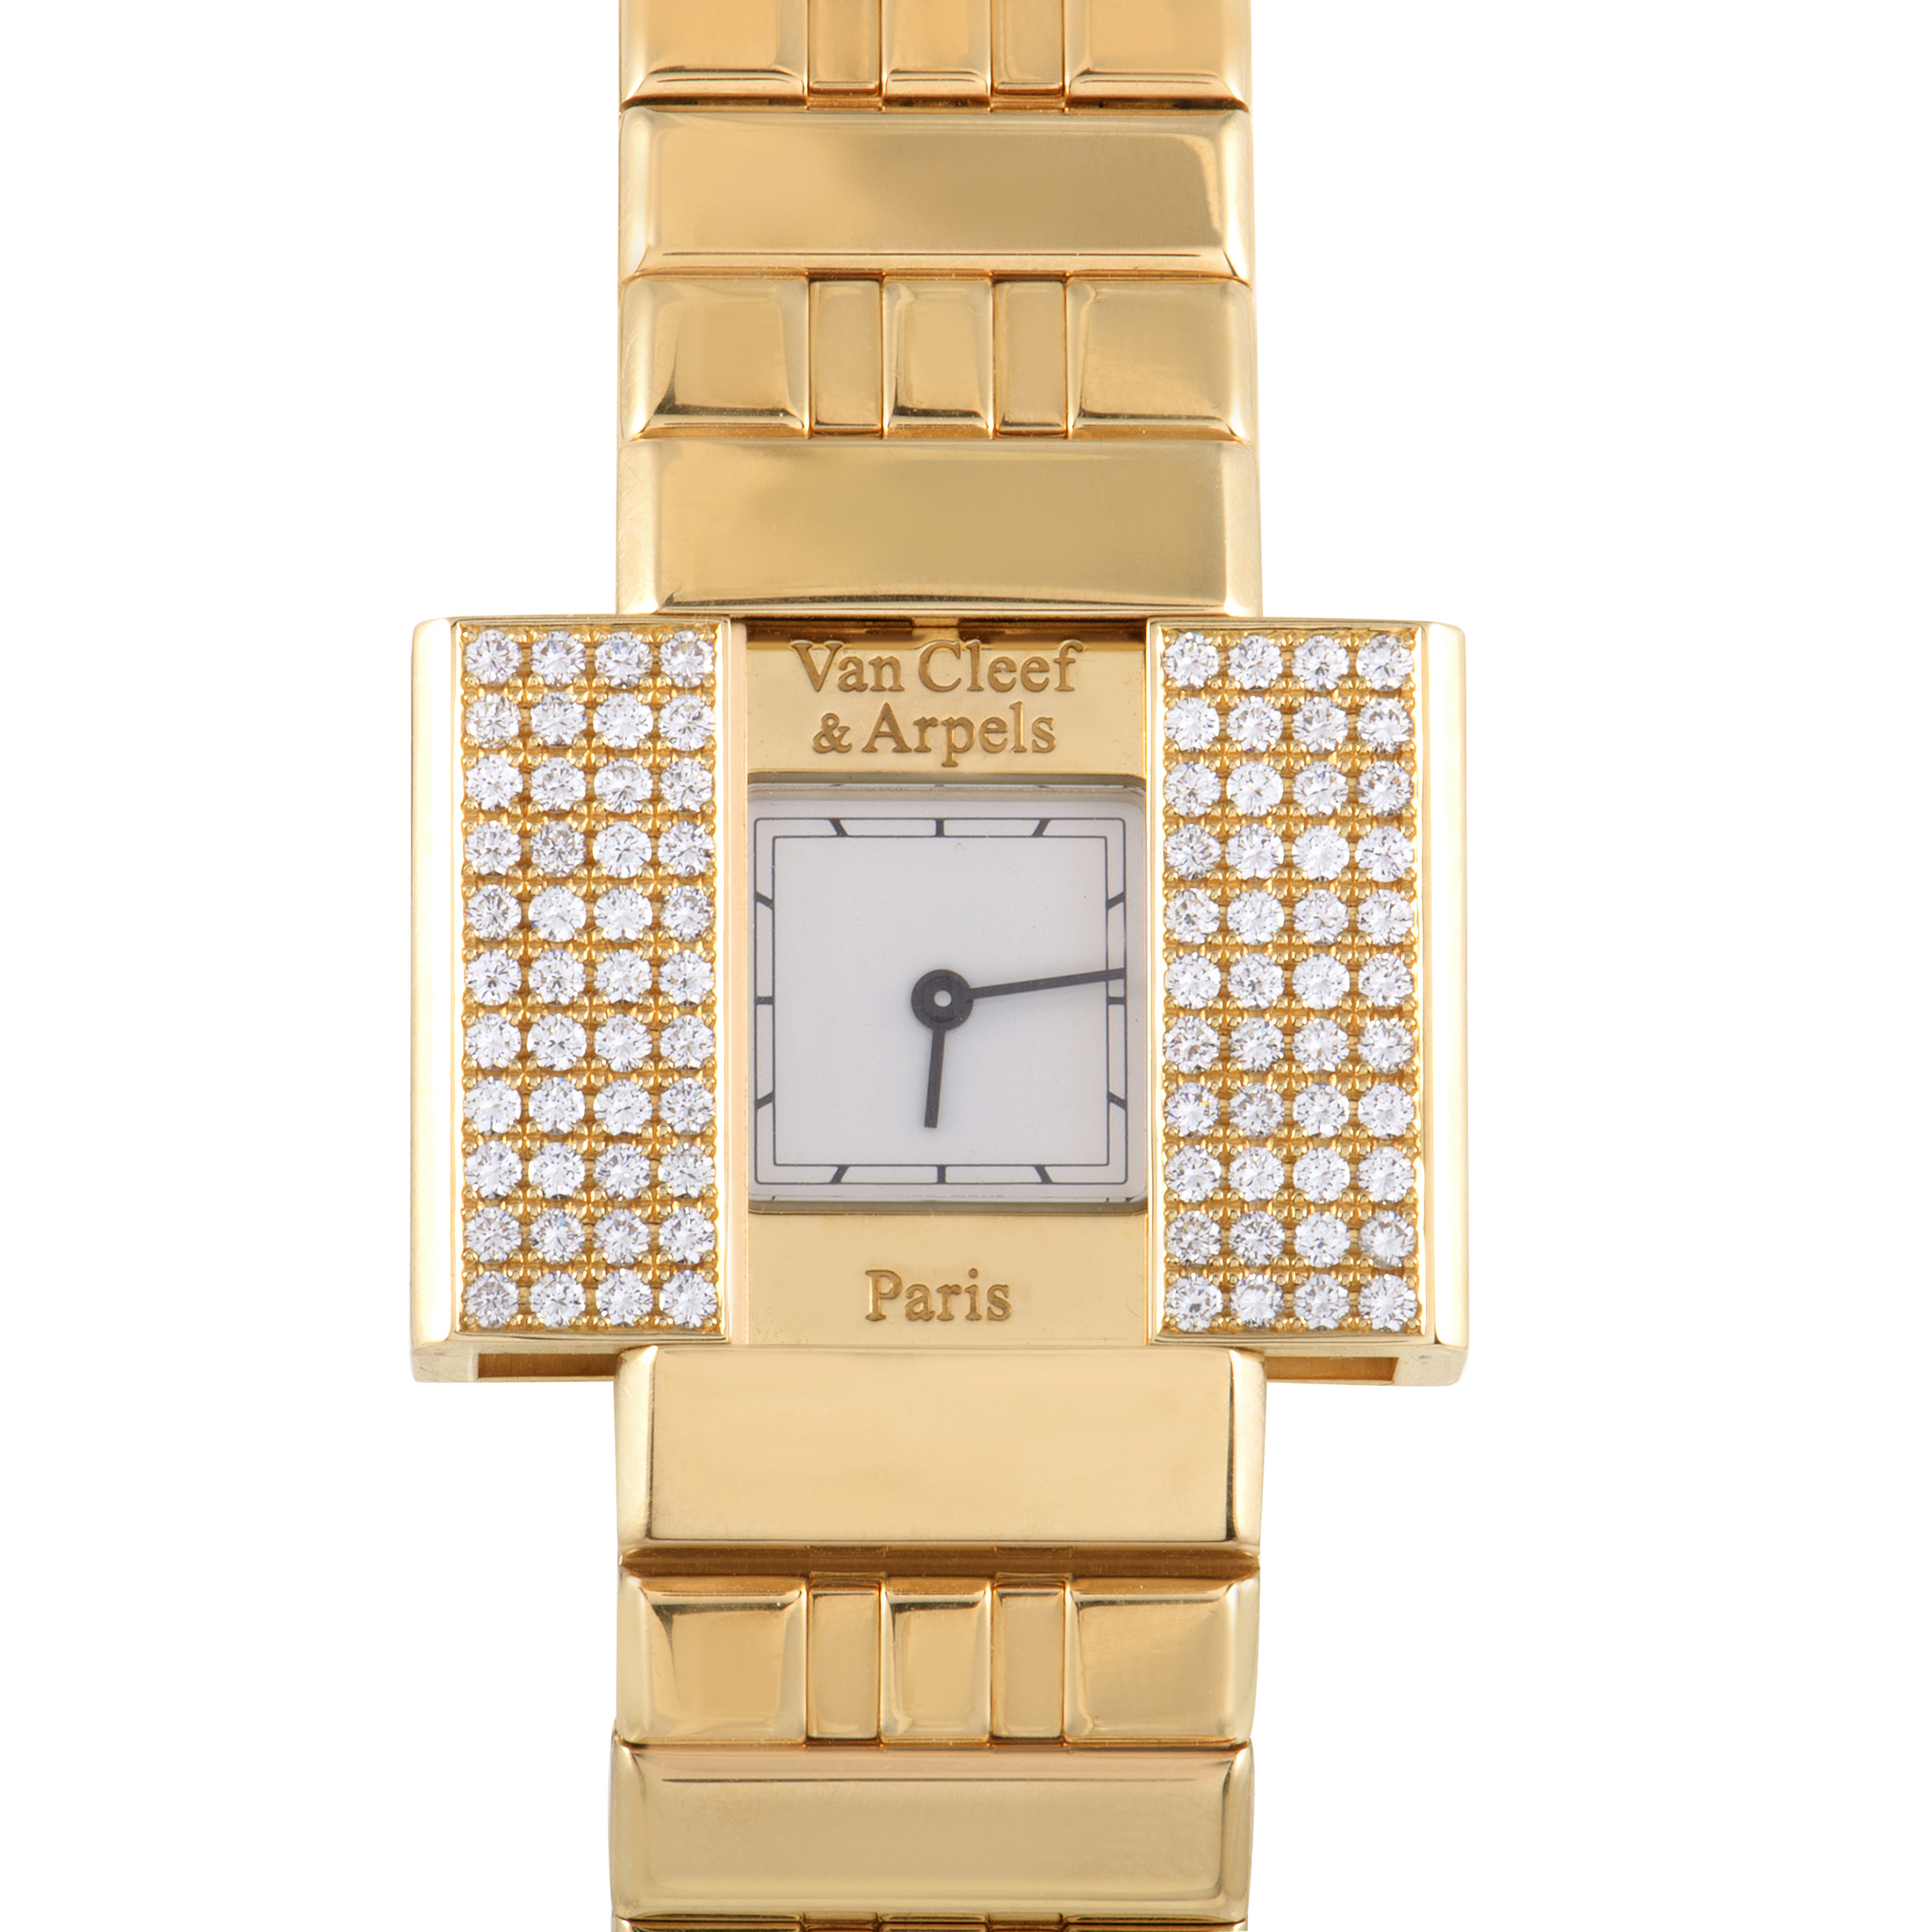 Van Cleef & Arpels Domino 39 Womens 18K Yellow Gold Diamond Watch 130976